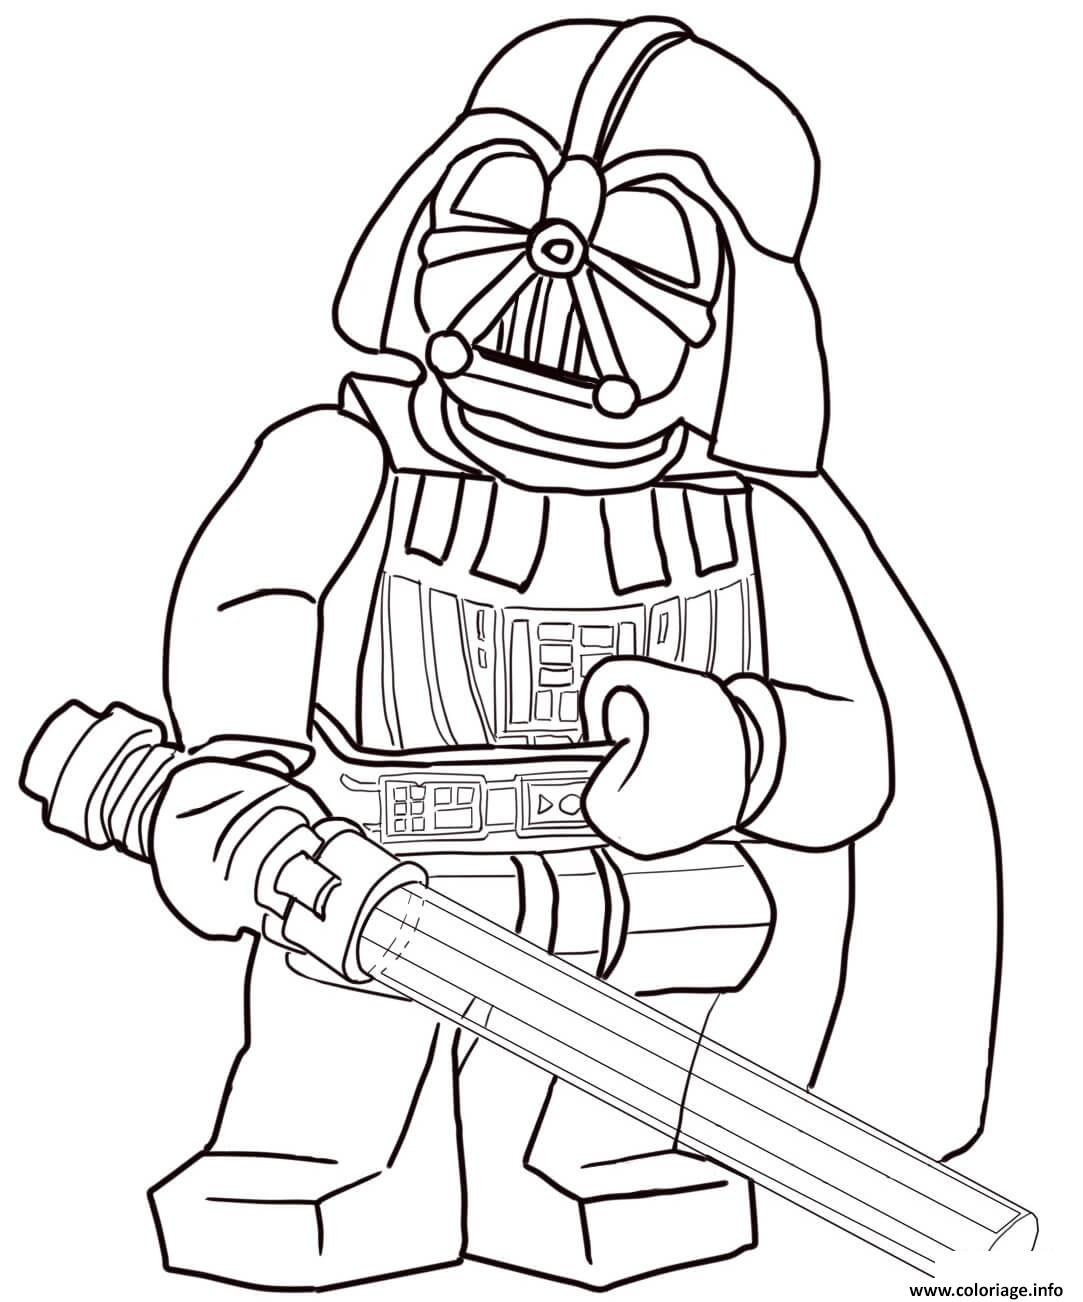 Coloriage Lego Star Wars 3 Movie Dessin   Imprimer